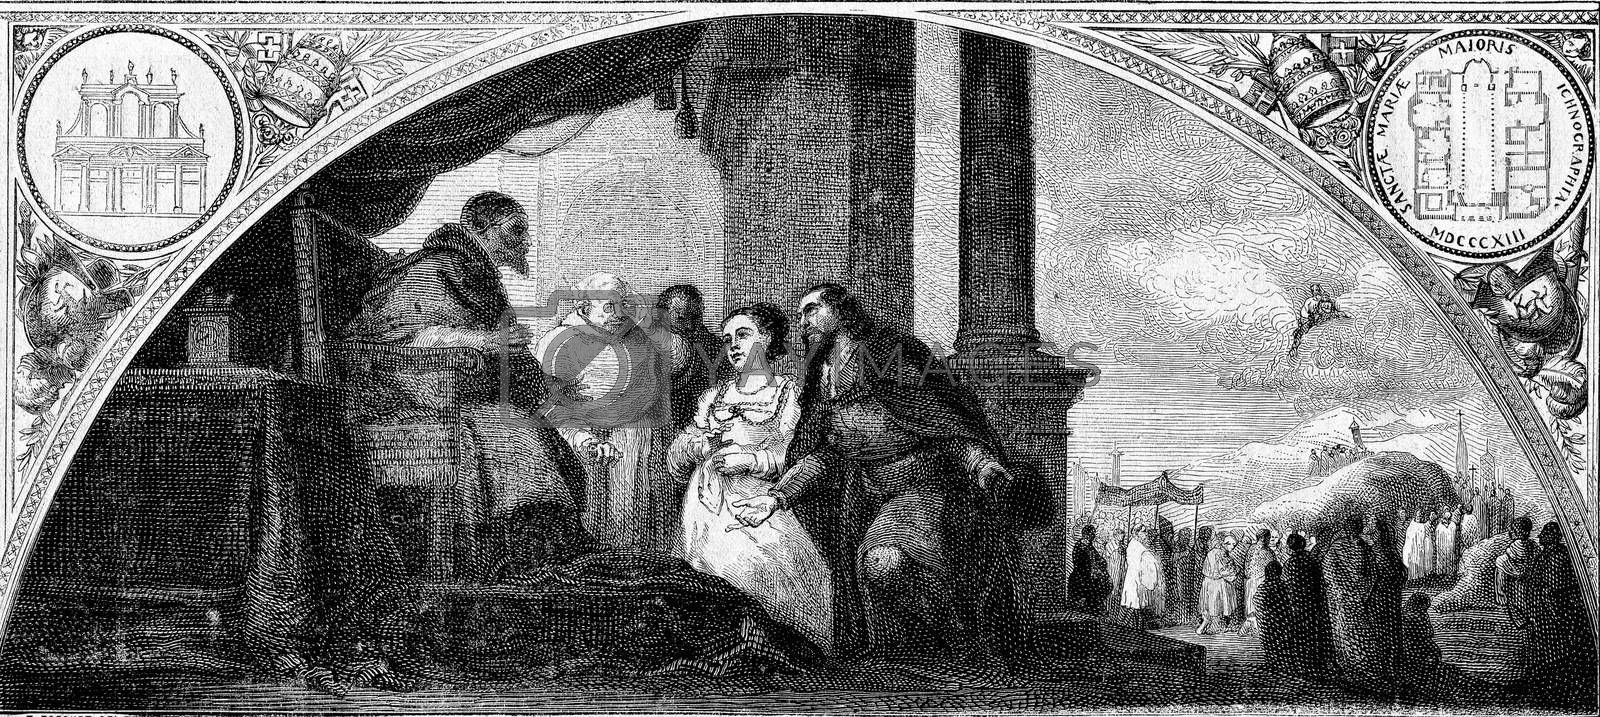 The patrician and his wife at the hearing of the Pope, painting  by Morphart